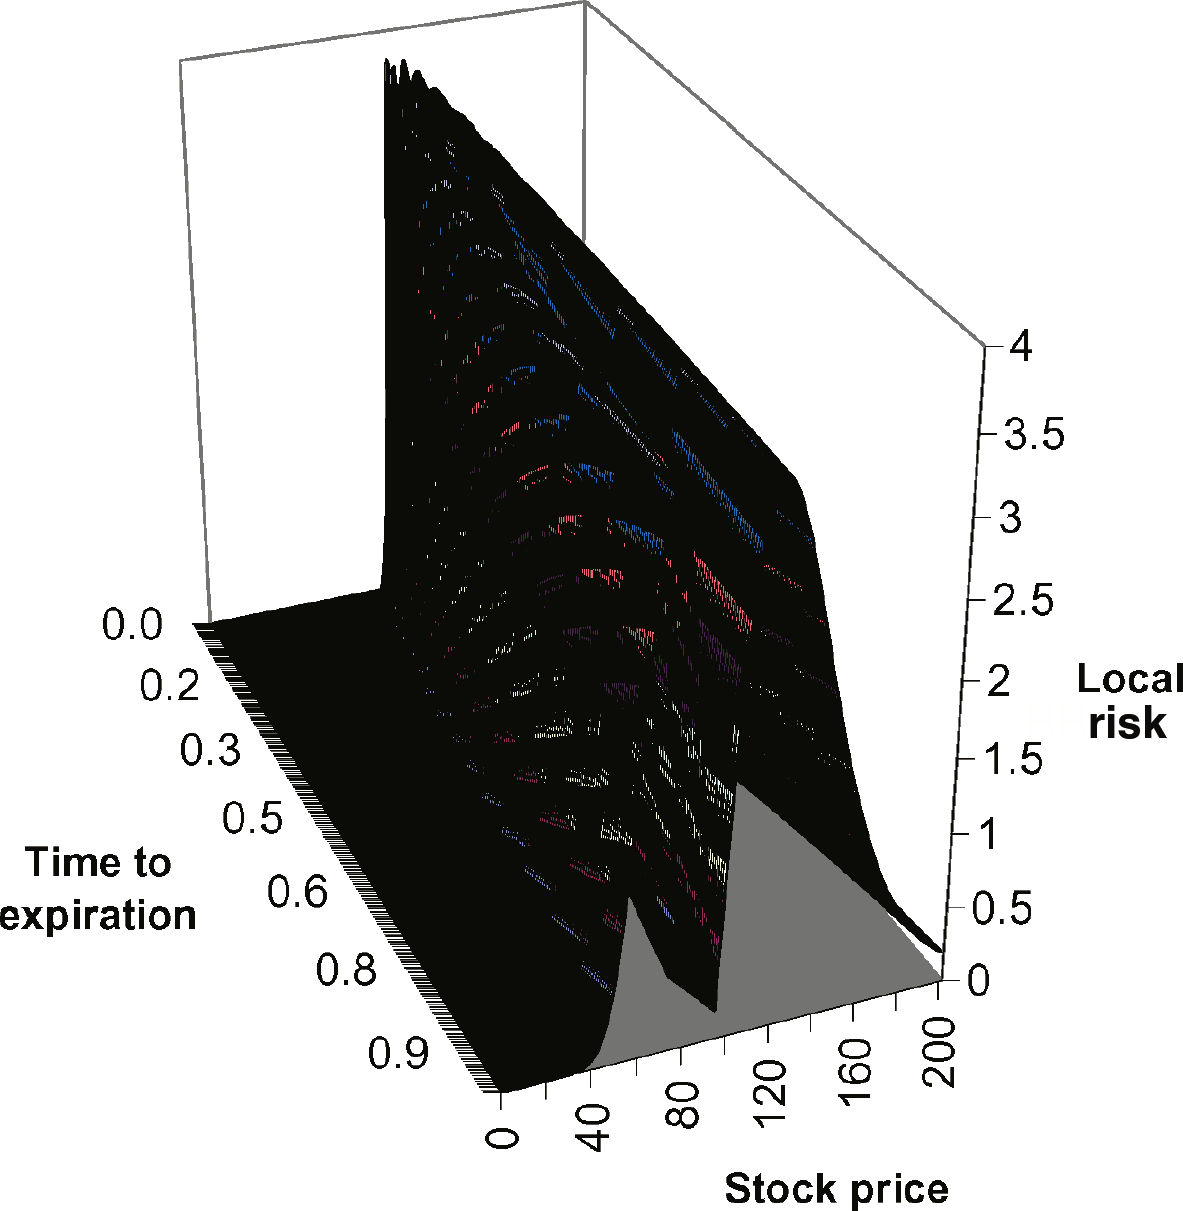 that is, S = E exp T t σr D + σ h /) σ h r D + σ /)) ). σ σ h Figure 7 shows a three-dimensional plot of expression 4), without the dt factor, as a function of stock price and time.